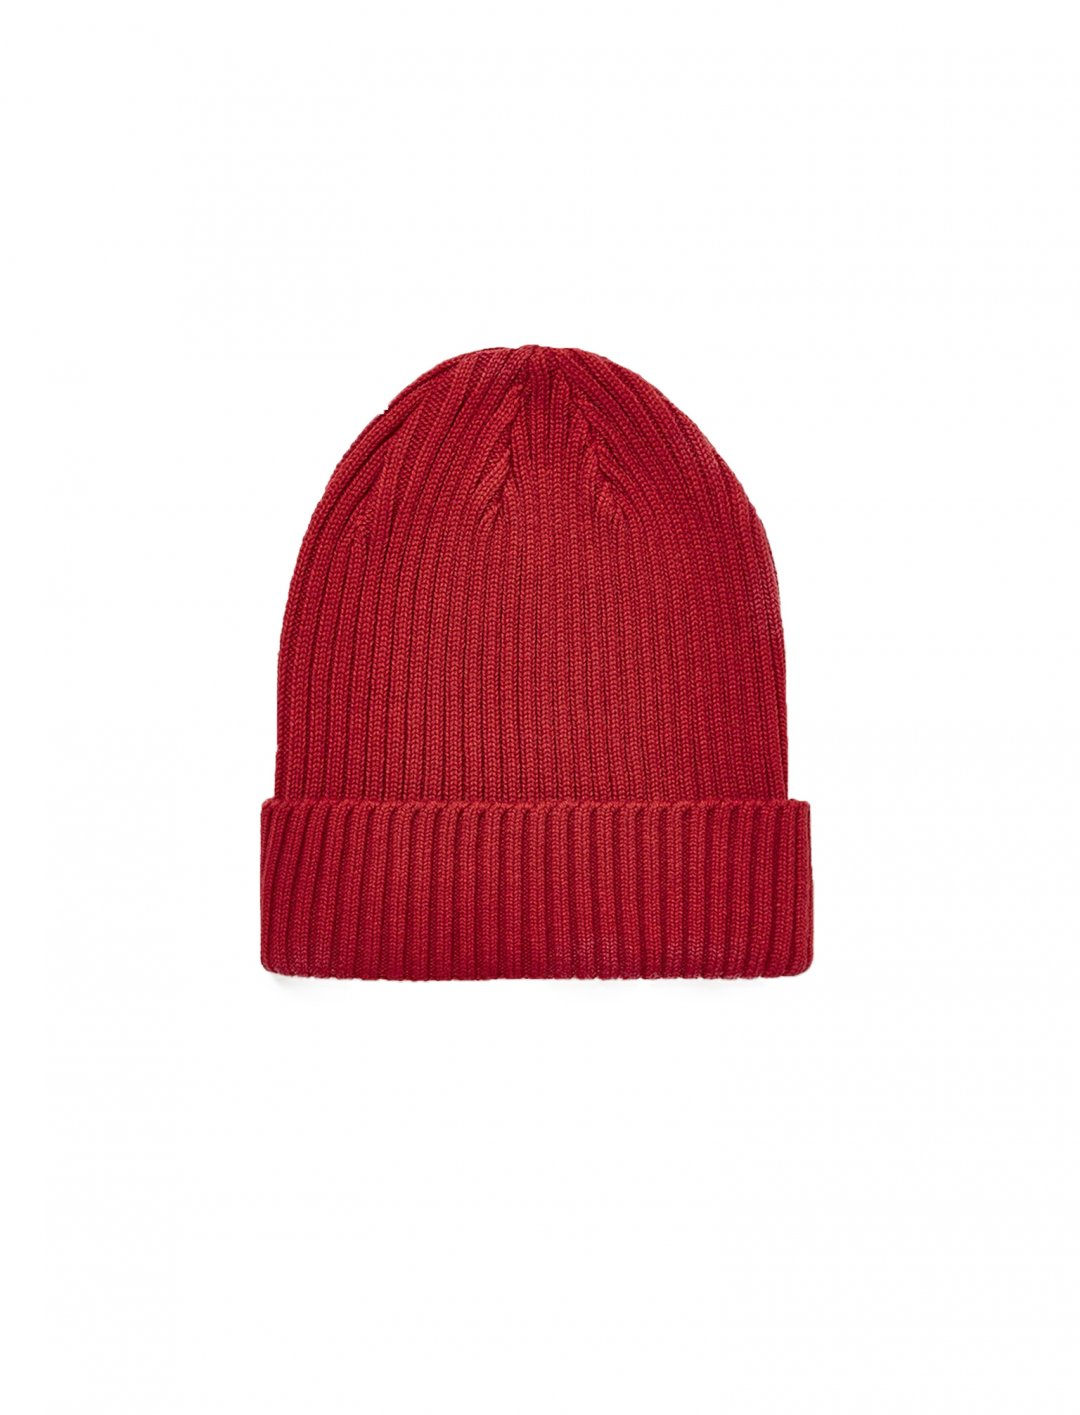 Bright Red Ribbed Beanie Accessories Topman